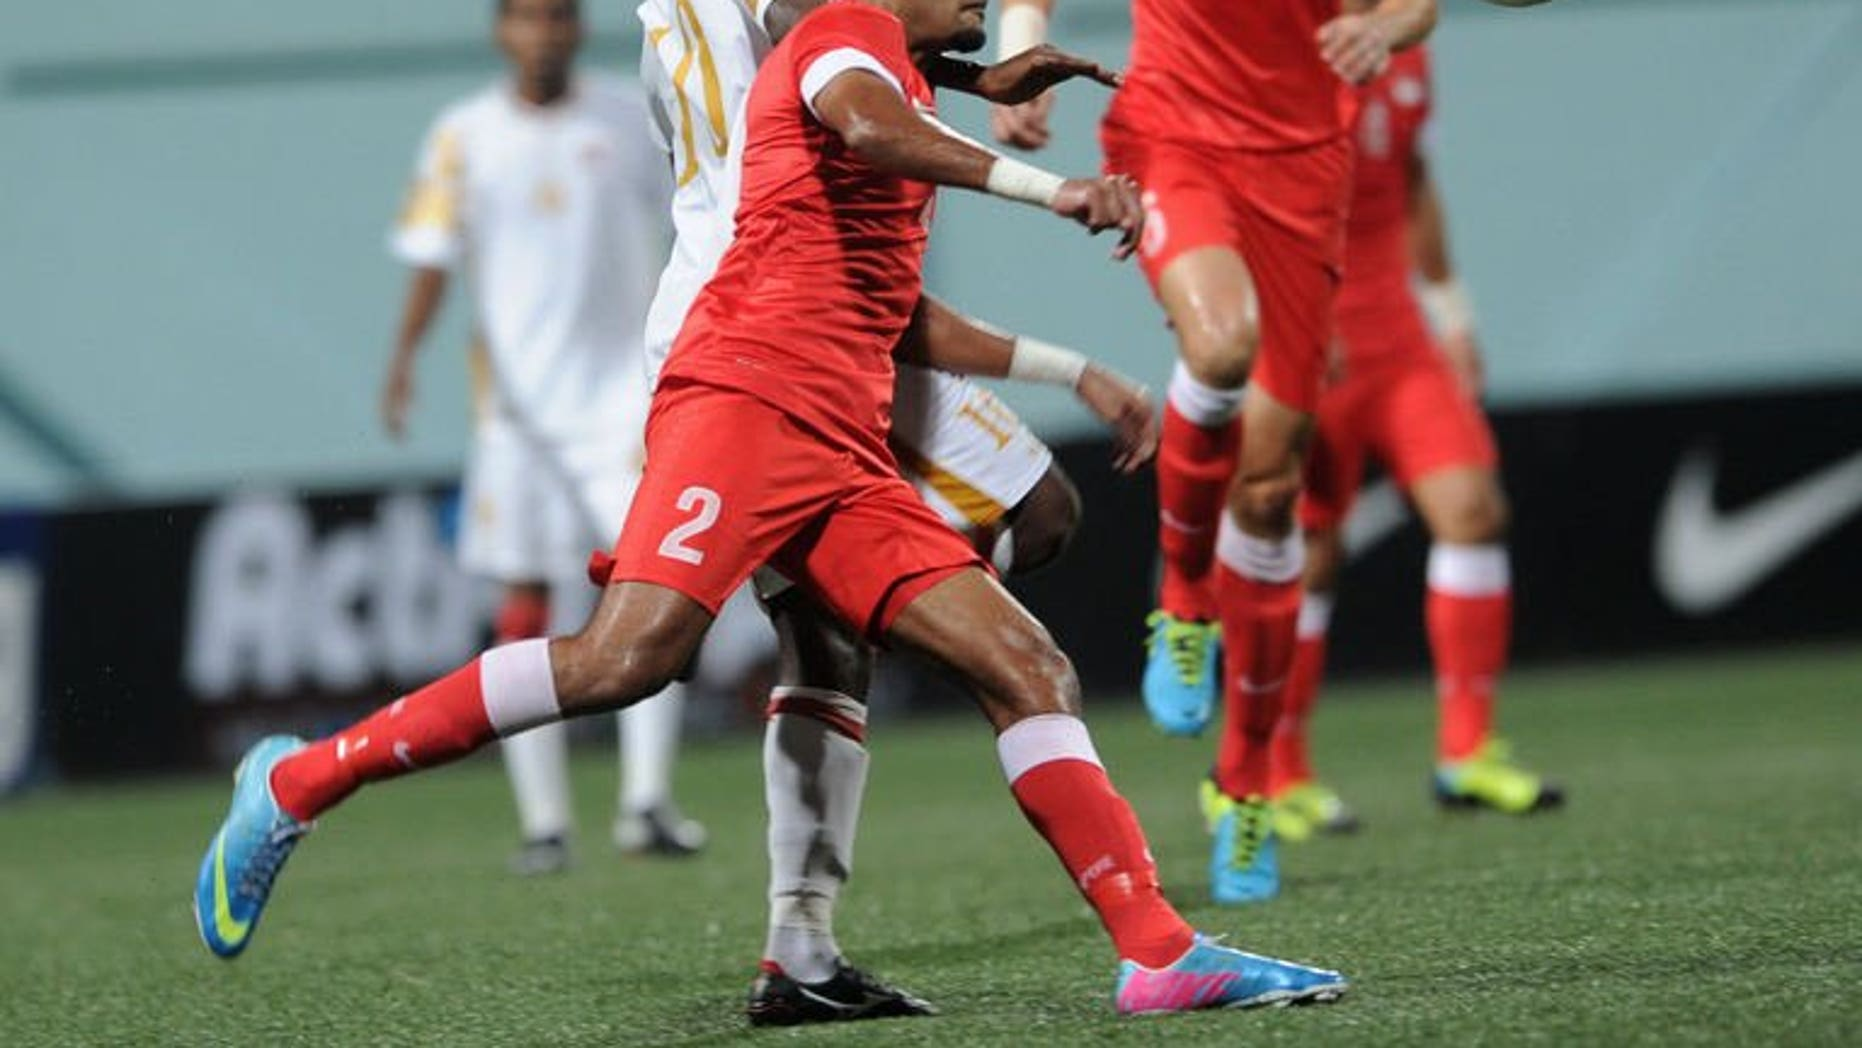 Oman midfielder Qasim Said (R) and Singapore defender Muhammed Faritz (L) fight for the ball during the AFC Cup Australia 2015 qualifiers in Singapore on August 14, 2013. Oman won 2-0.